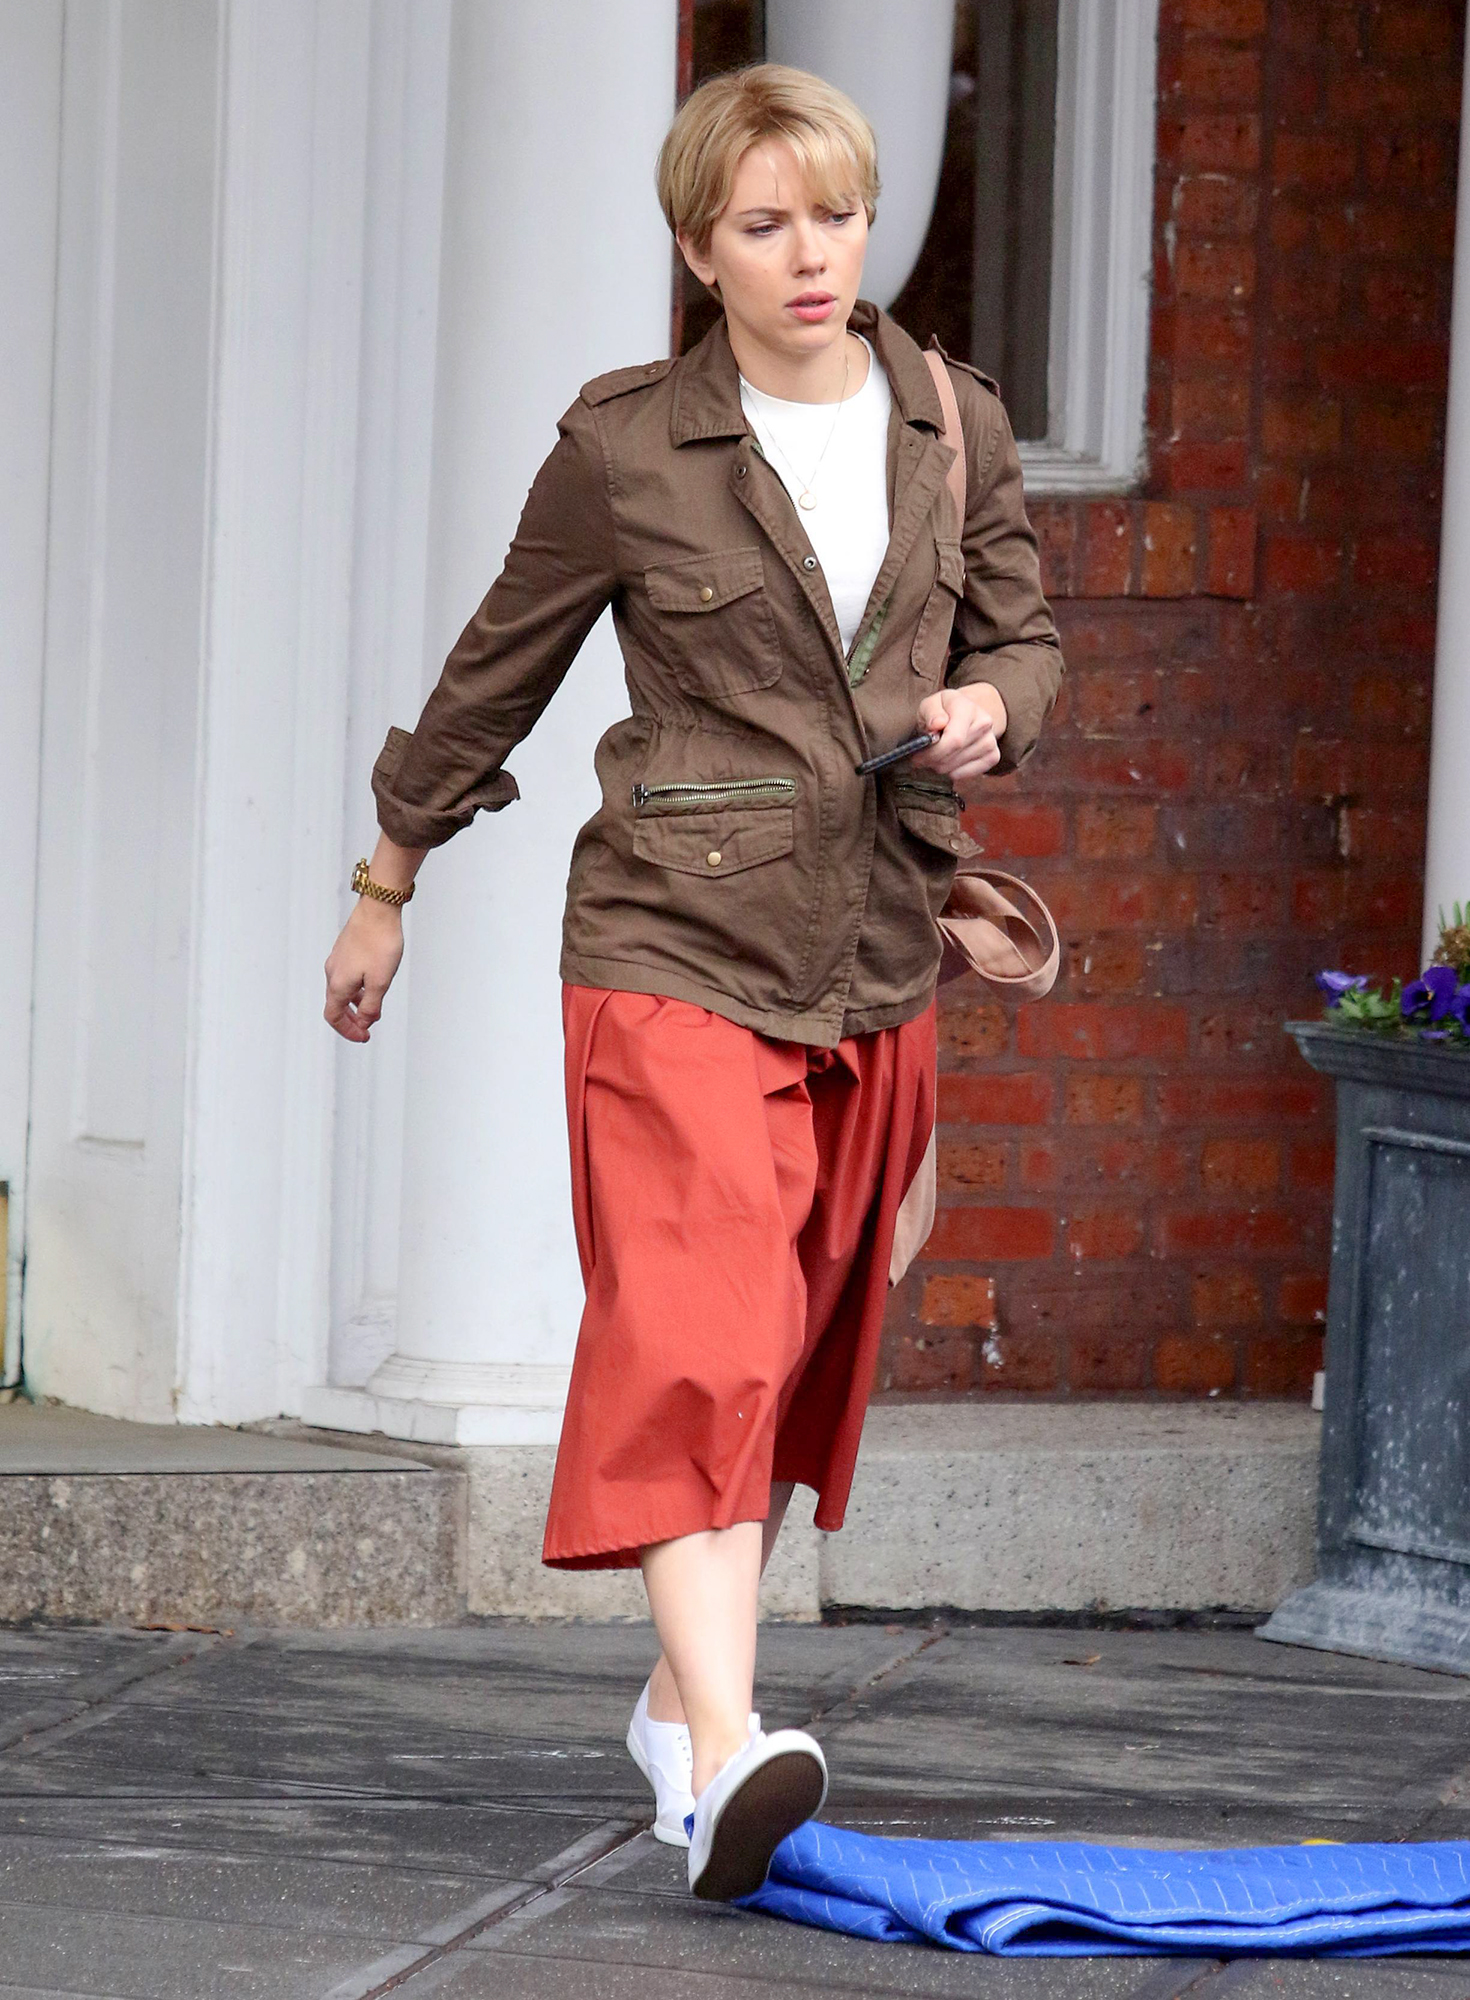 Scarlett Johansson sports conservative clothes and short blonde hair while filming scenes with Adam Driver for the upcoming 'Noah Baumbach's Untitled Movie Project' in Brooklyn's Park Slope